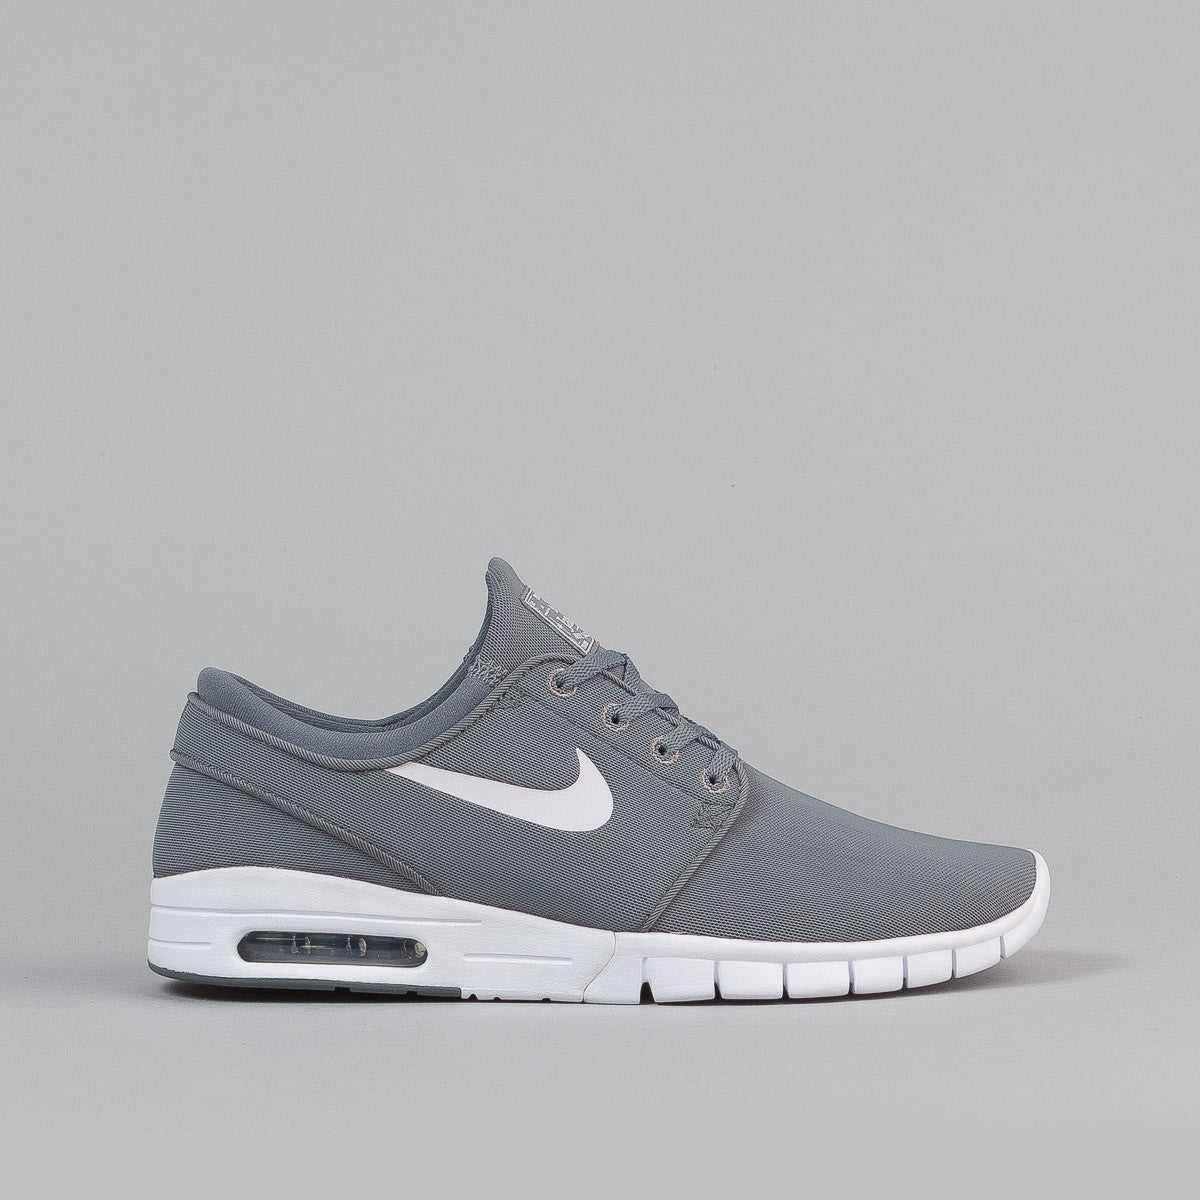 Nike Sb Stefan Janoski Max Shoes - Cool Grey/White-White-Dark Grey